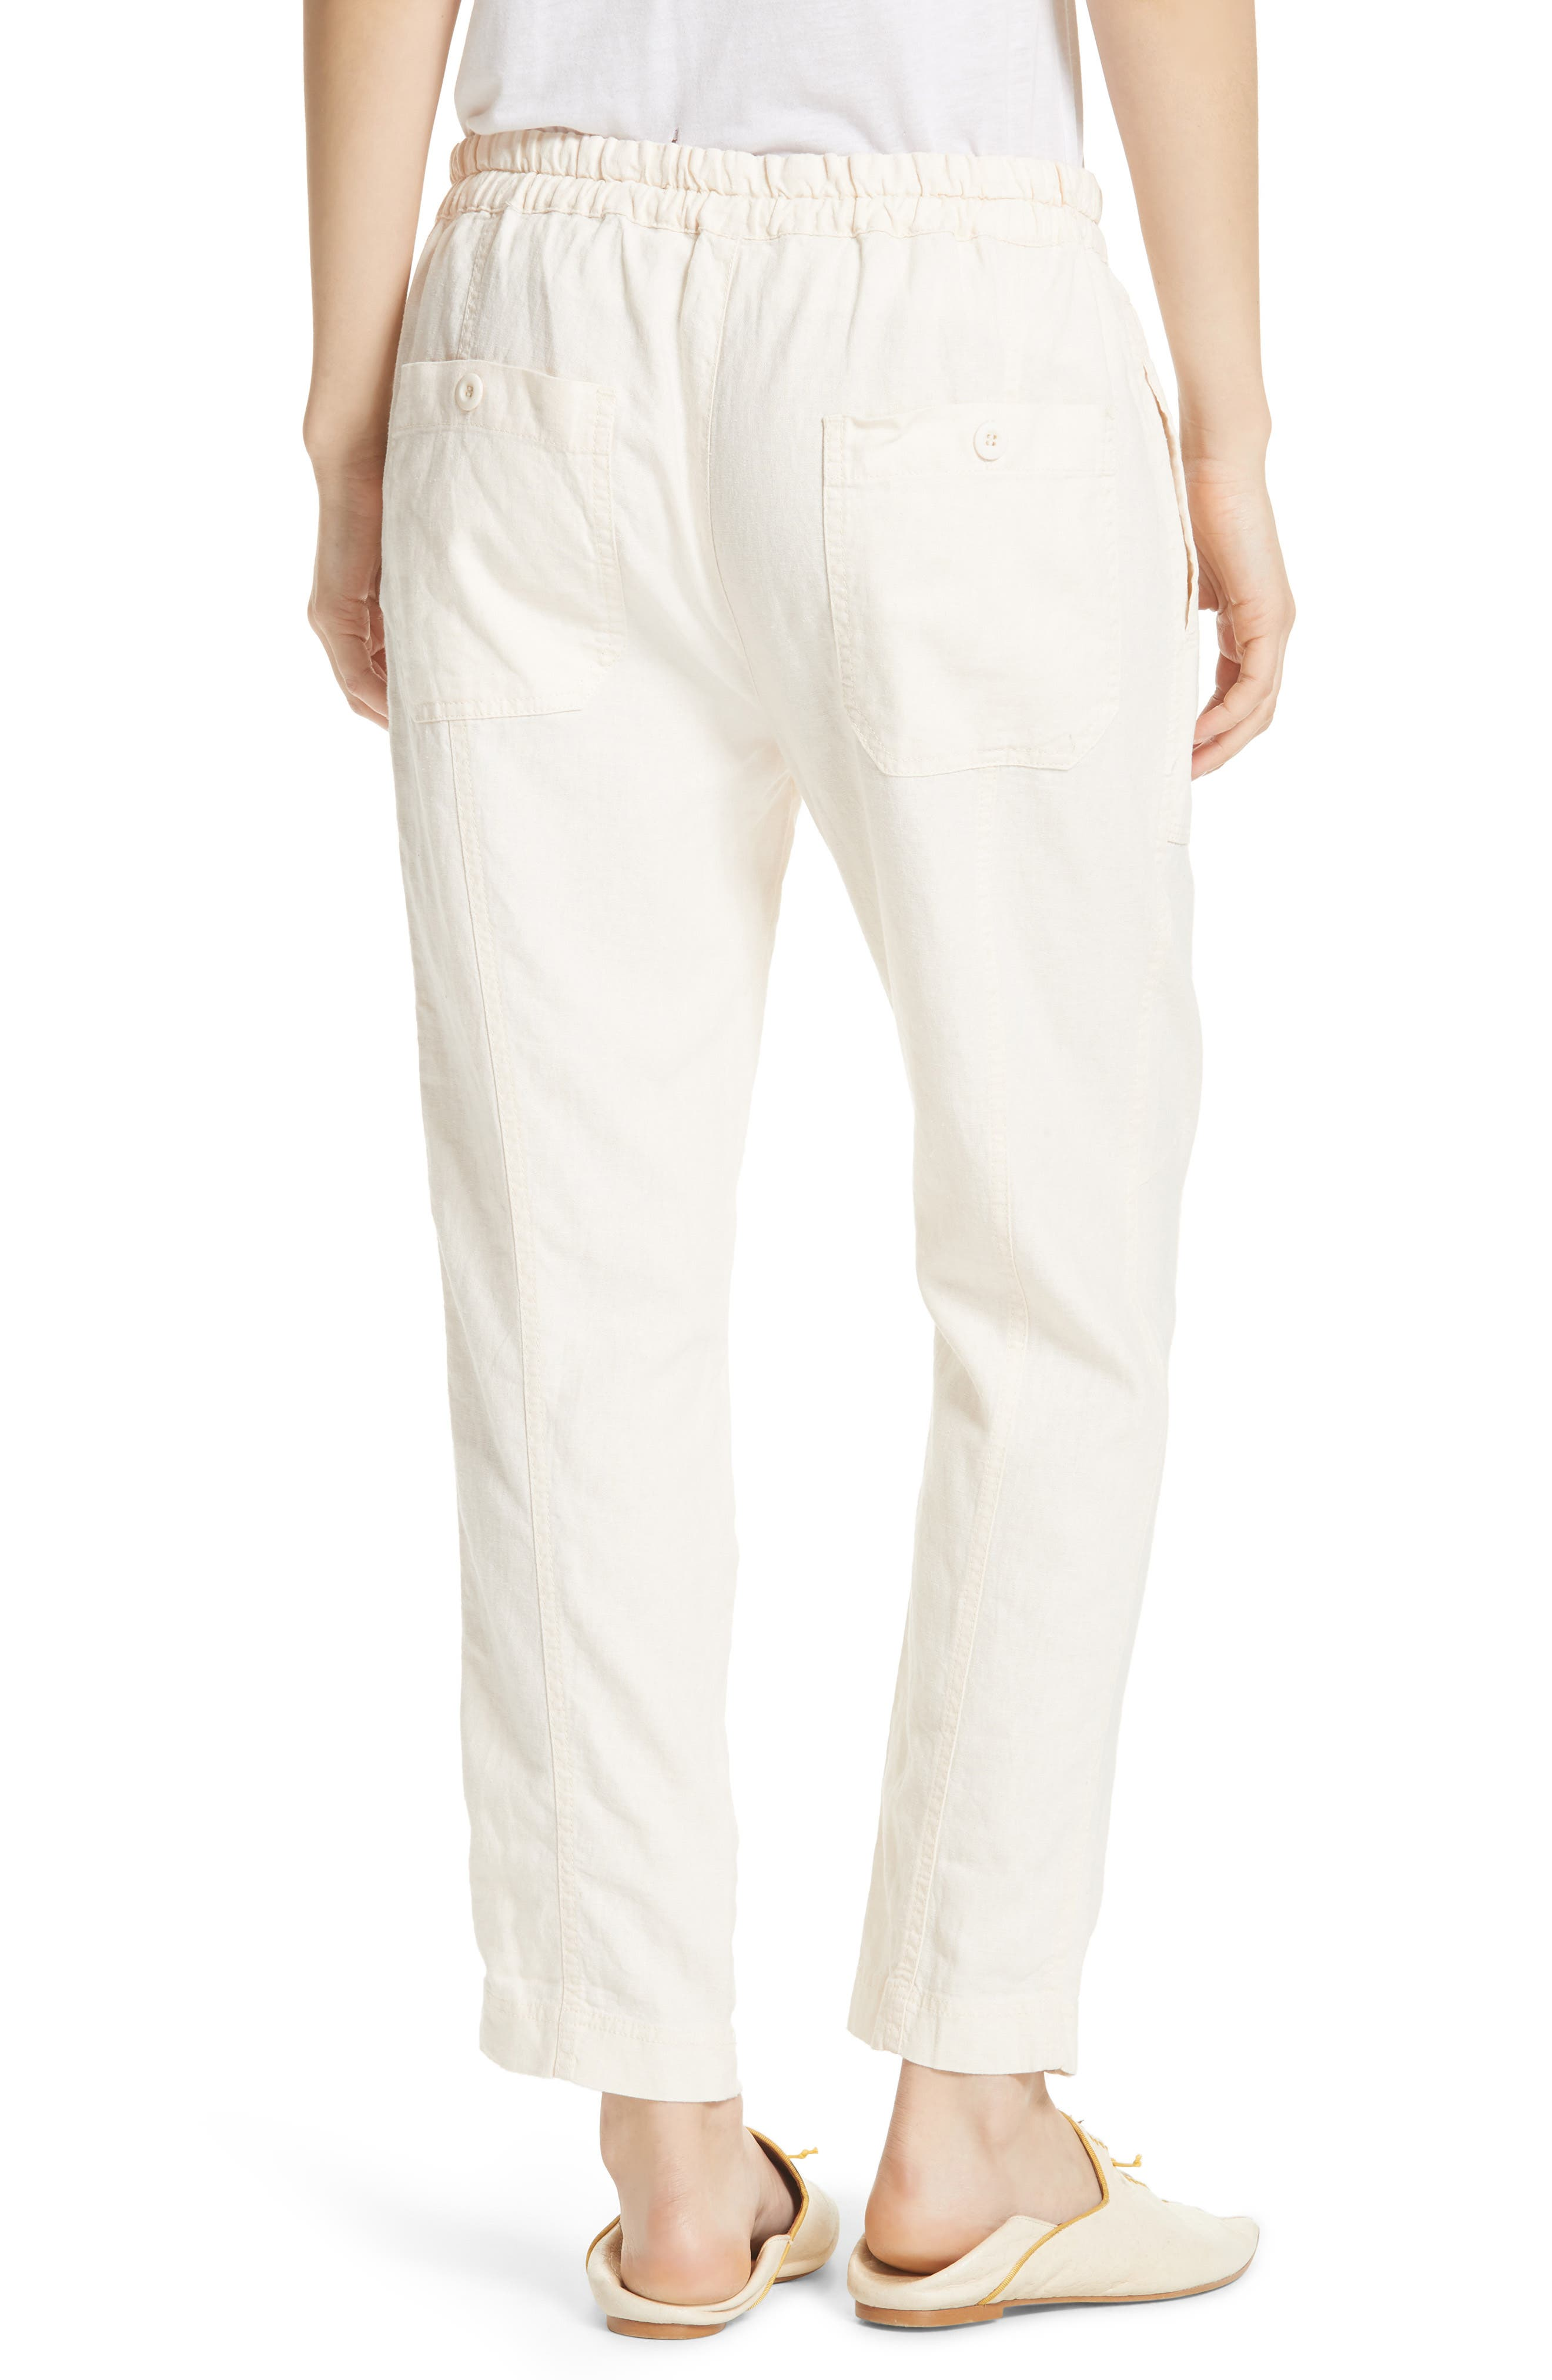 Palmer Skinny Utility Pants,                             Alternate thumbnail 2, color,                             Ivory